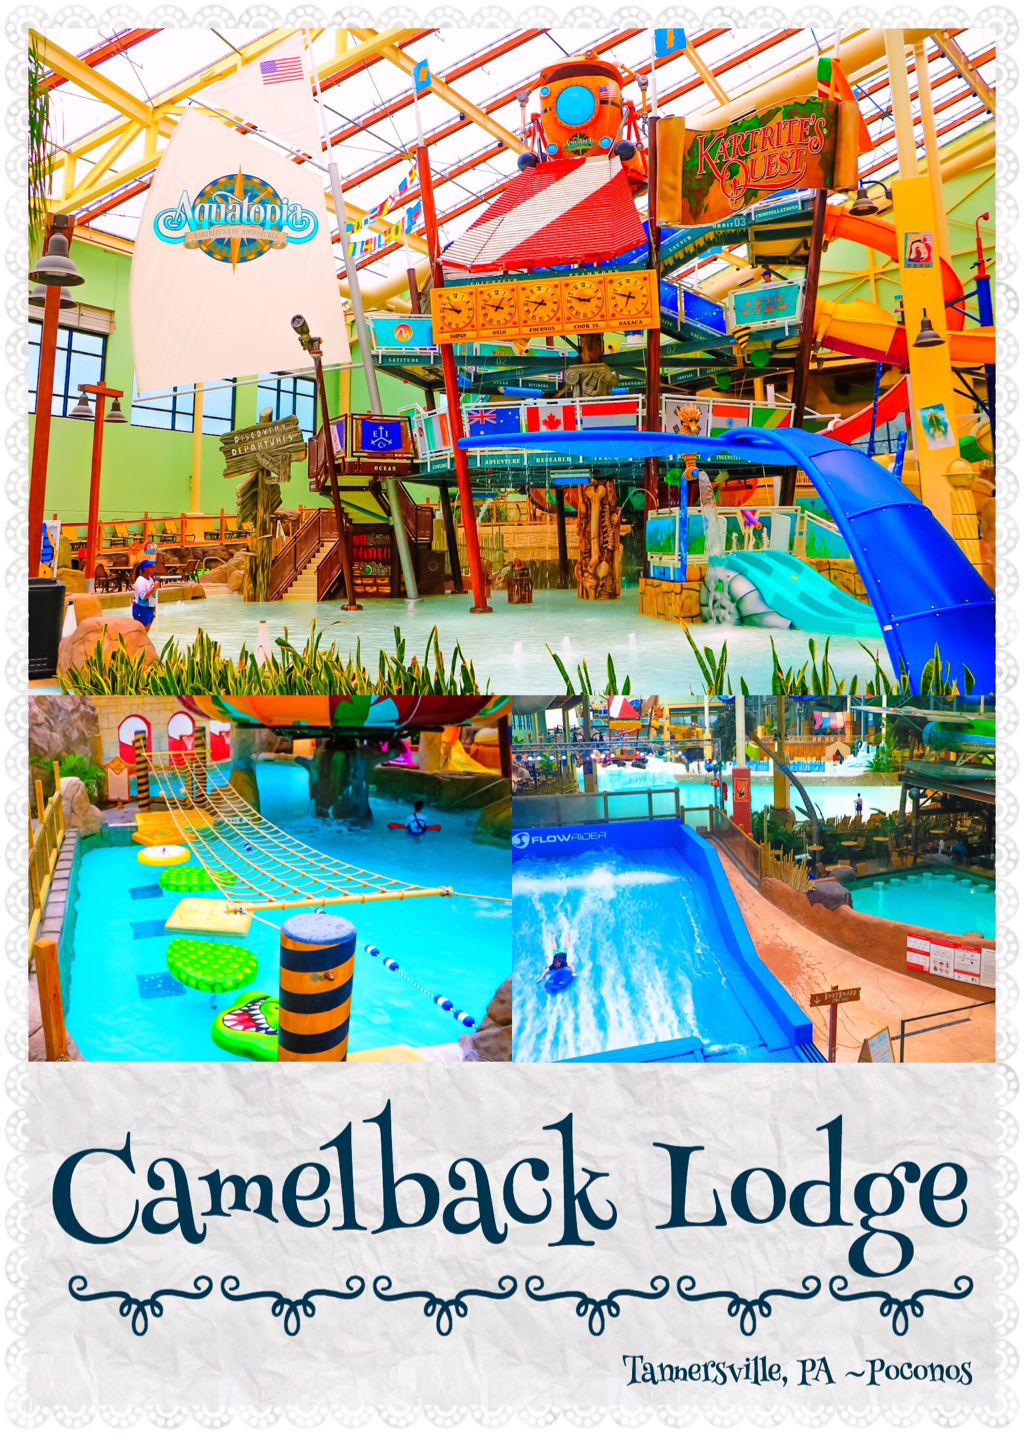 CAMELBACK LODGE  Aquatopia Indoor Water Park  The